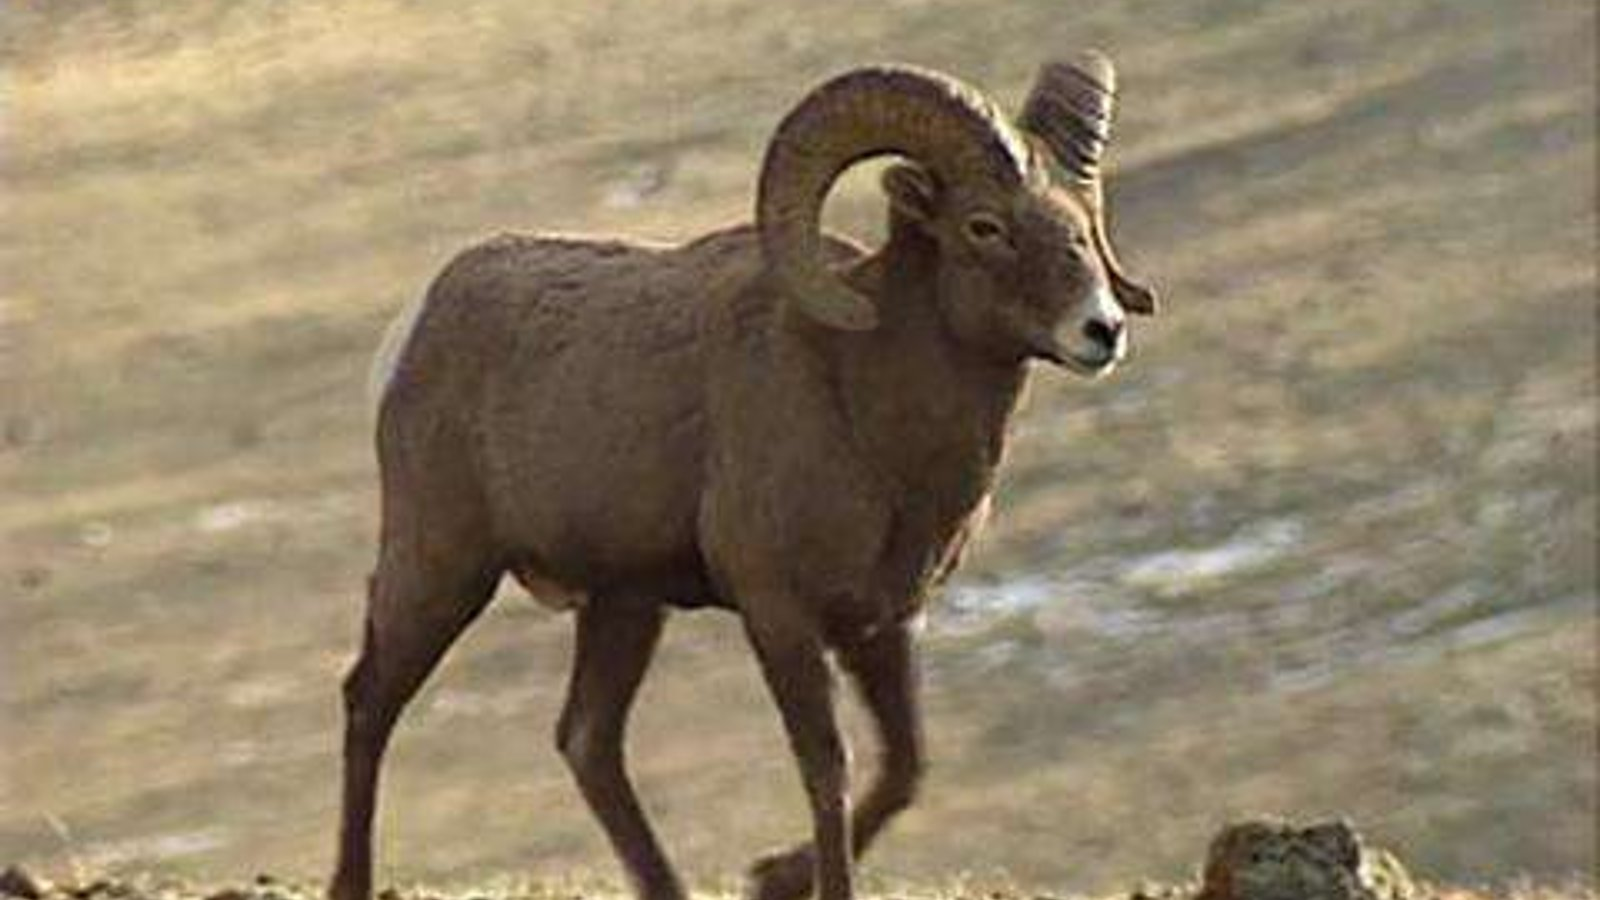 Sheep Eaters, Part 4- Hunting & Fishing